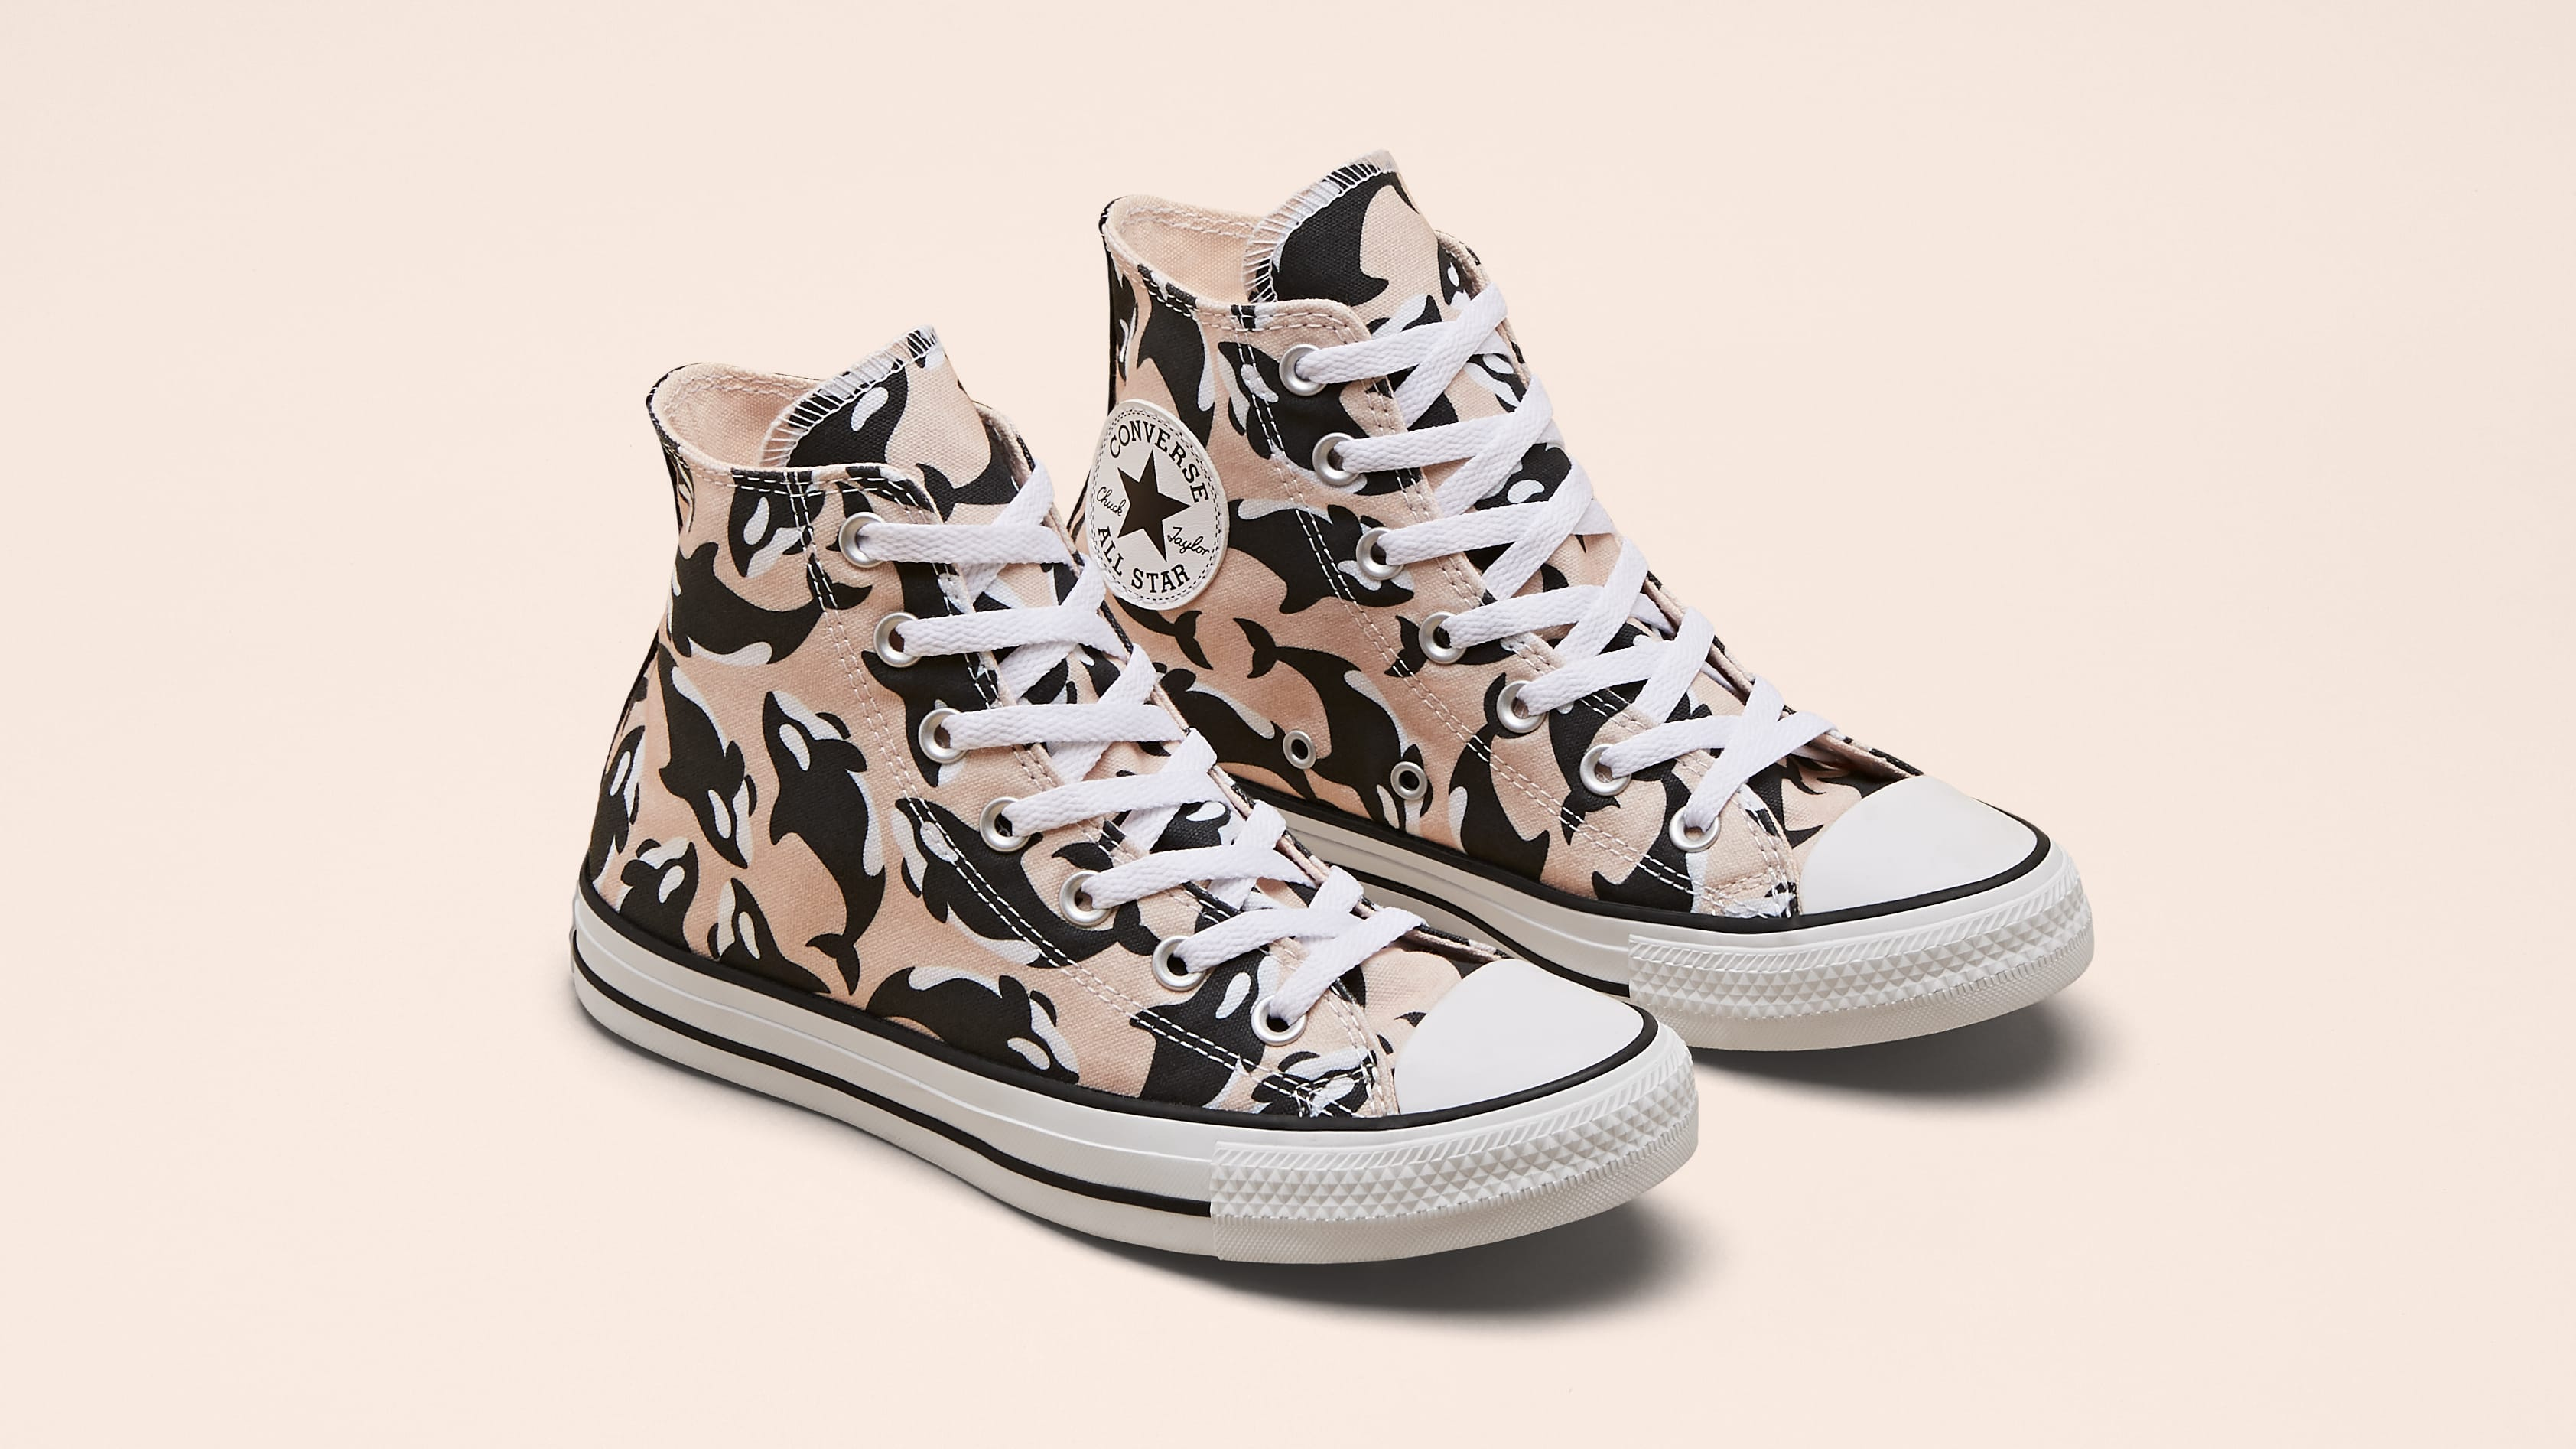 Millie Bobby Brown X Converse Chuck Taylor All Star Millie By You Release Date Sole Collector